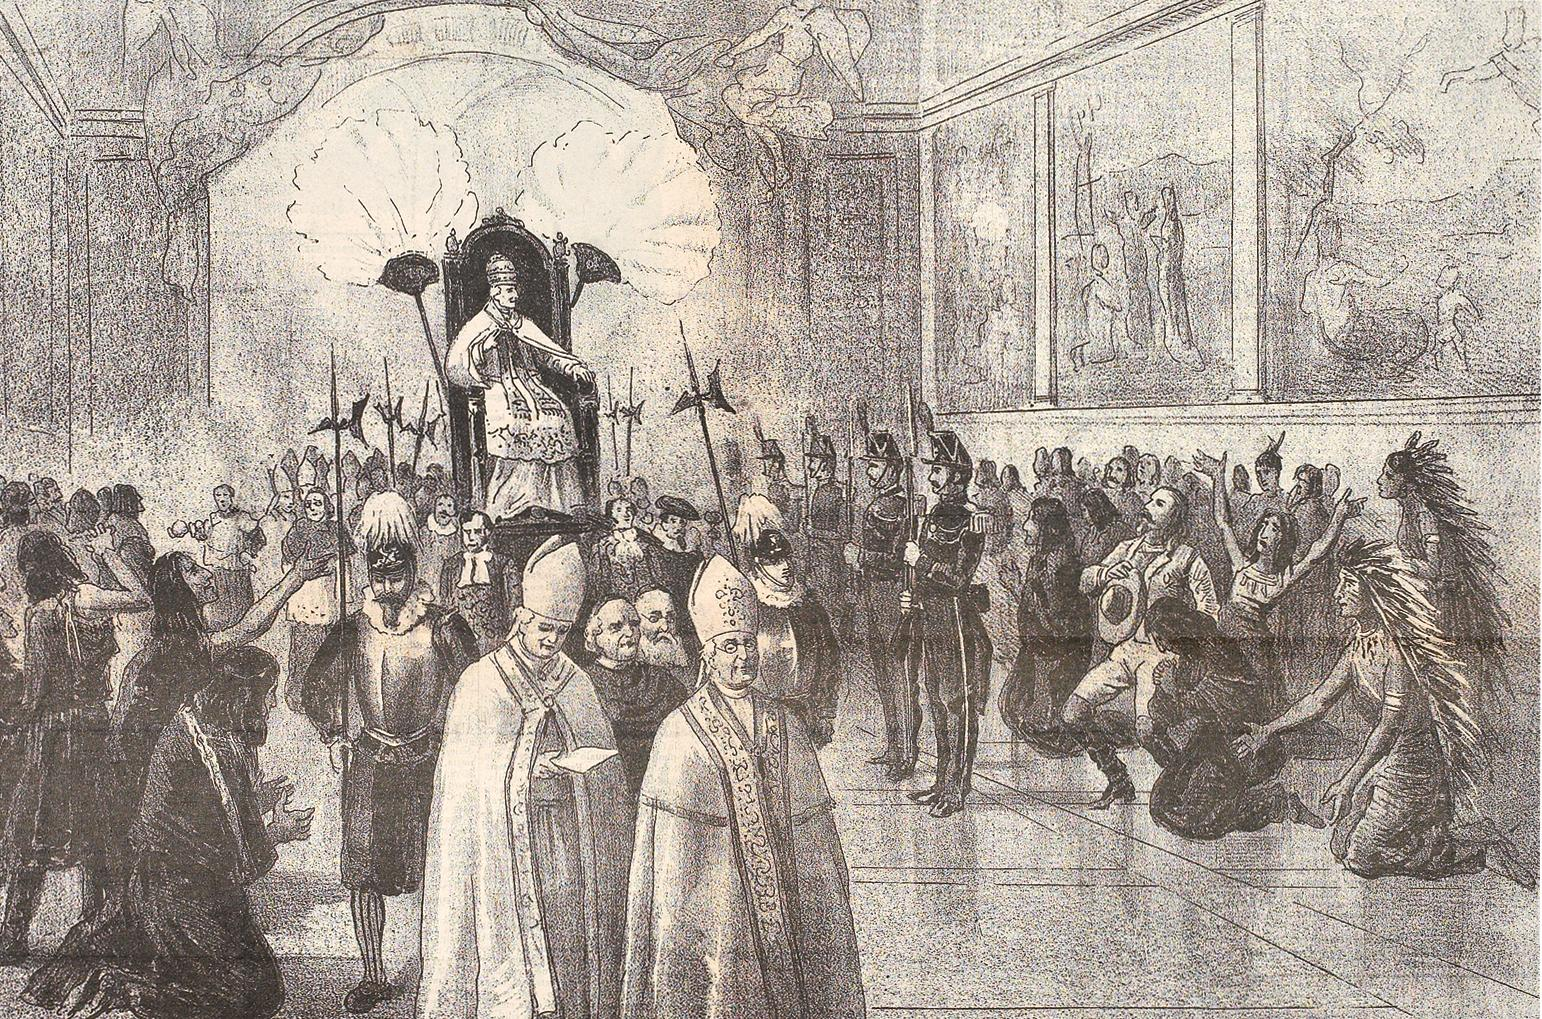 """During the 1889-90 tour of Europe, Buffalo Bill and his performers visited Rome, """"where Pope Leo XIII singled out the performers for a special blessing,"""" reports the 2005 book Buffalo Bill in Bologna by Robert W. Rydell and Rob Kroes.– Courtesy Buffalo Bill Historical Center / Cody, Wyoming / MS6.IX.6.2 –"""